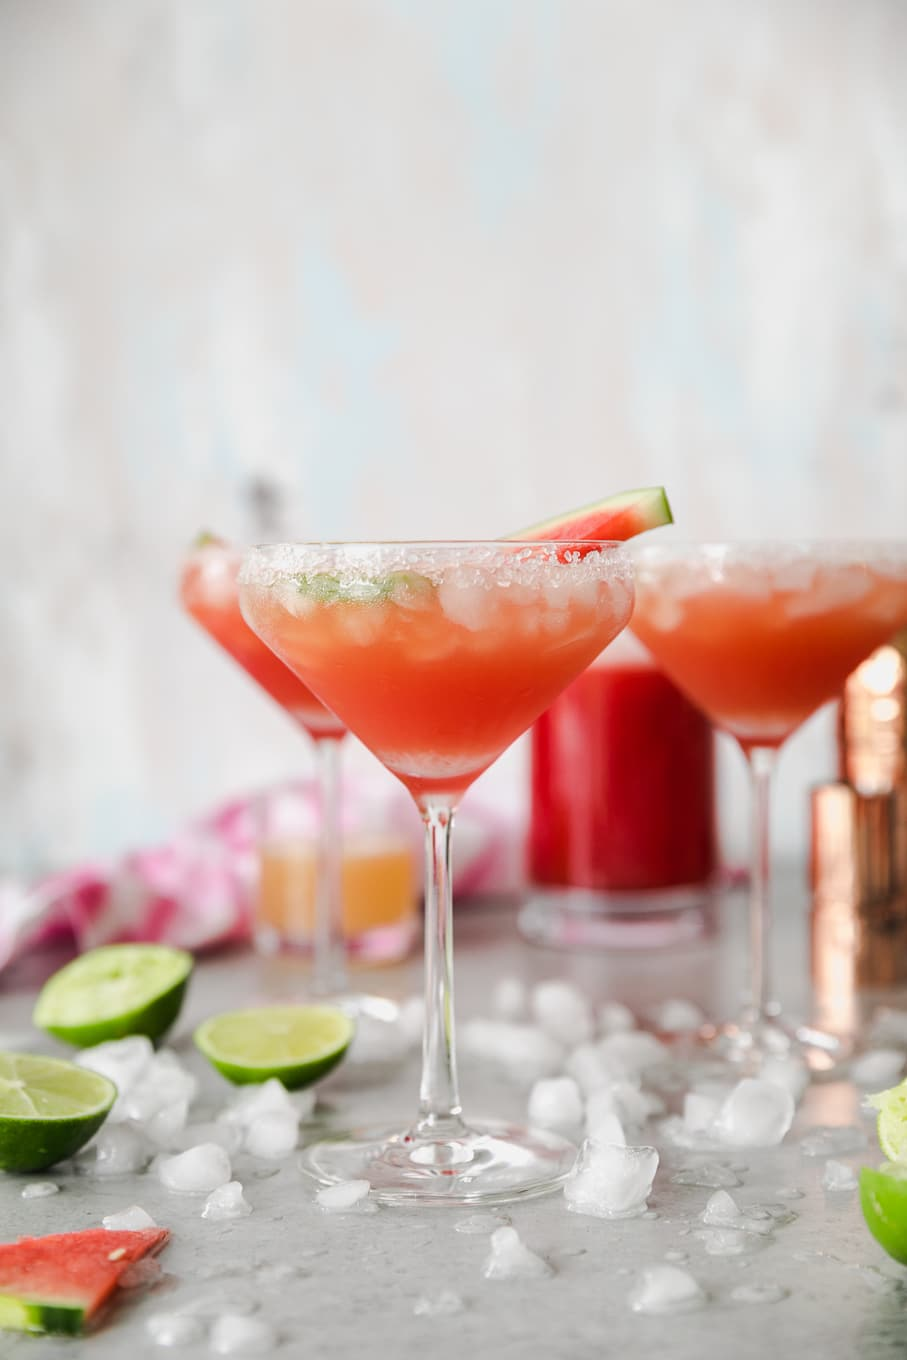 Forward facing shot of 3 tall margarita glasses filled with a deep reddish pink margarita and crushed ice and limes scattered around